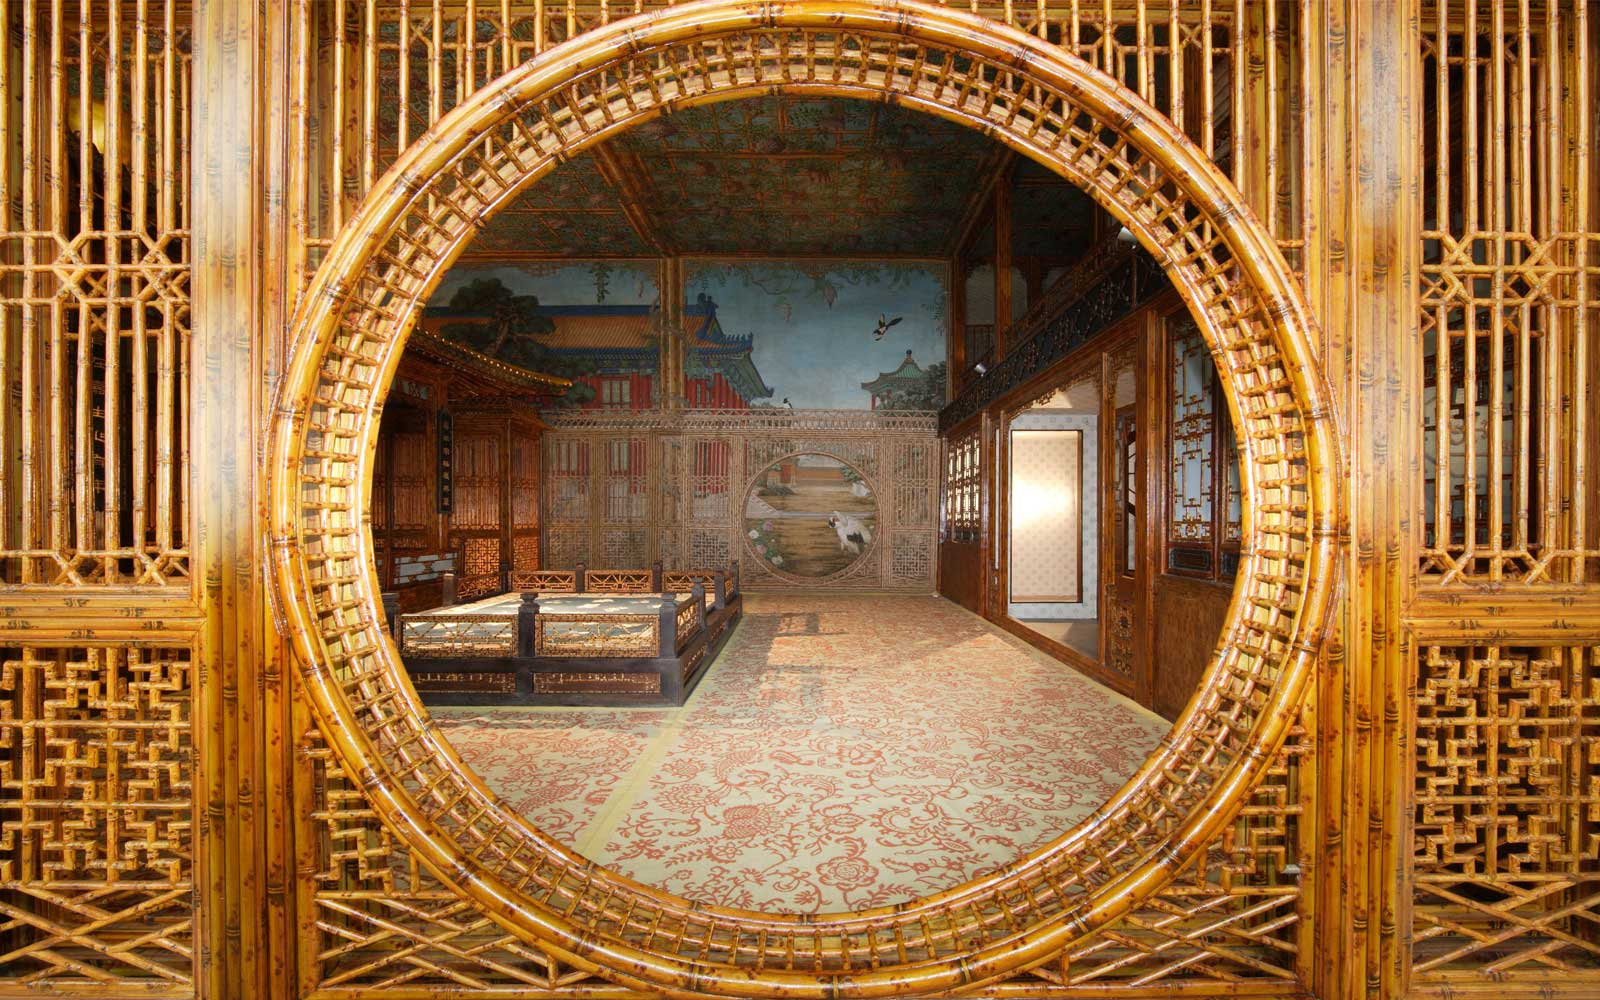 A photo of one of the interiors, the Juanqinzhai theater room, after conservation.